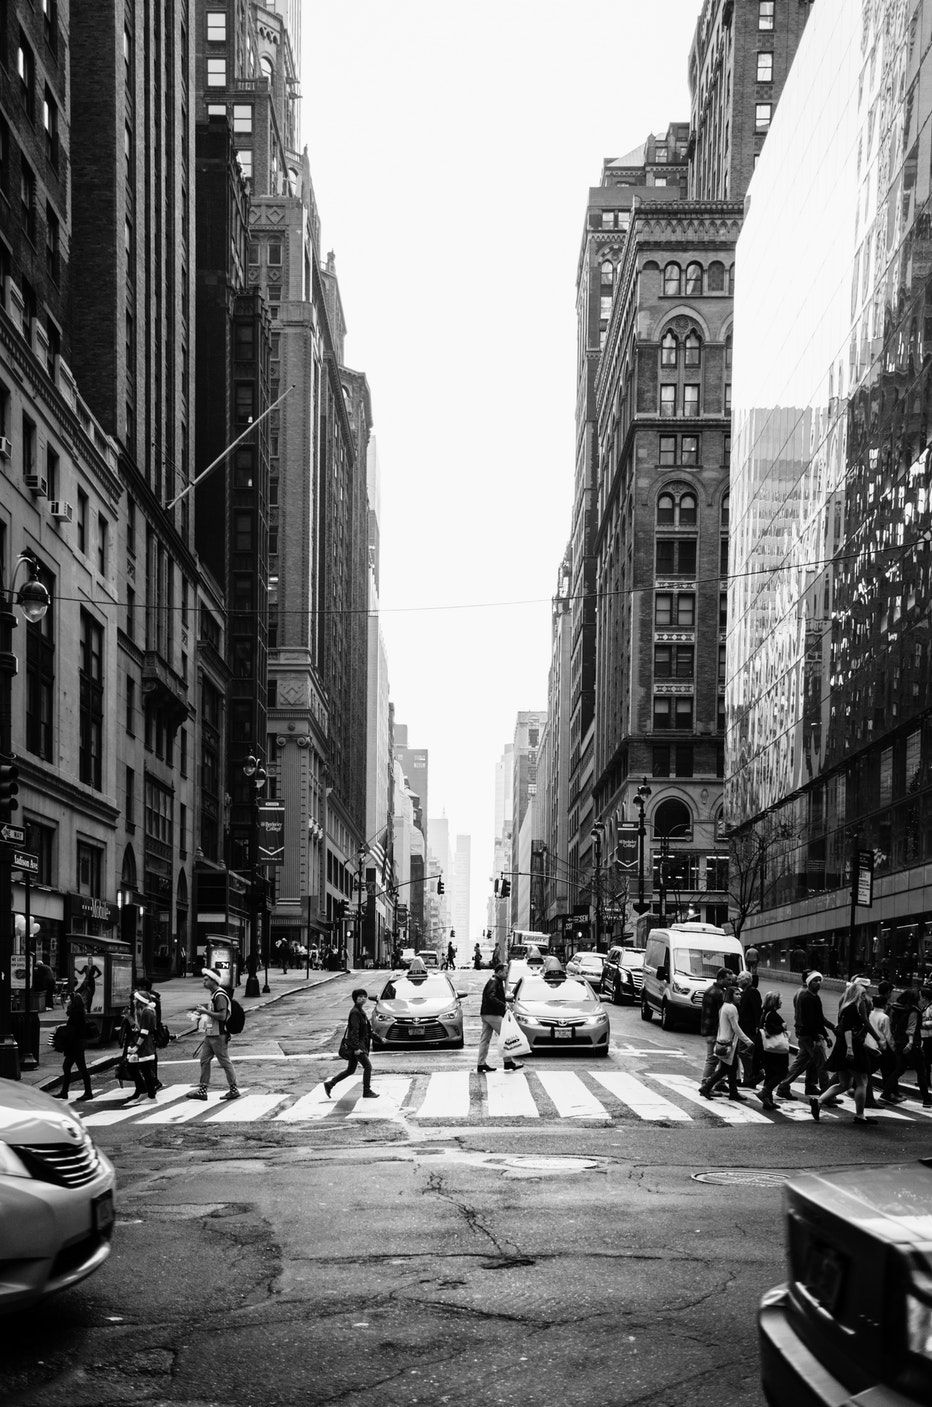 Grayscale Photo Of People Crossing The Road City Wallpaper Black And White Pictures New York City